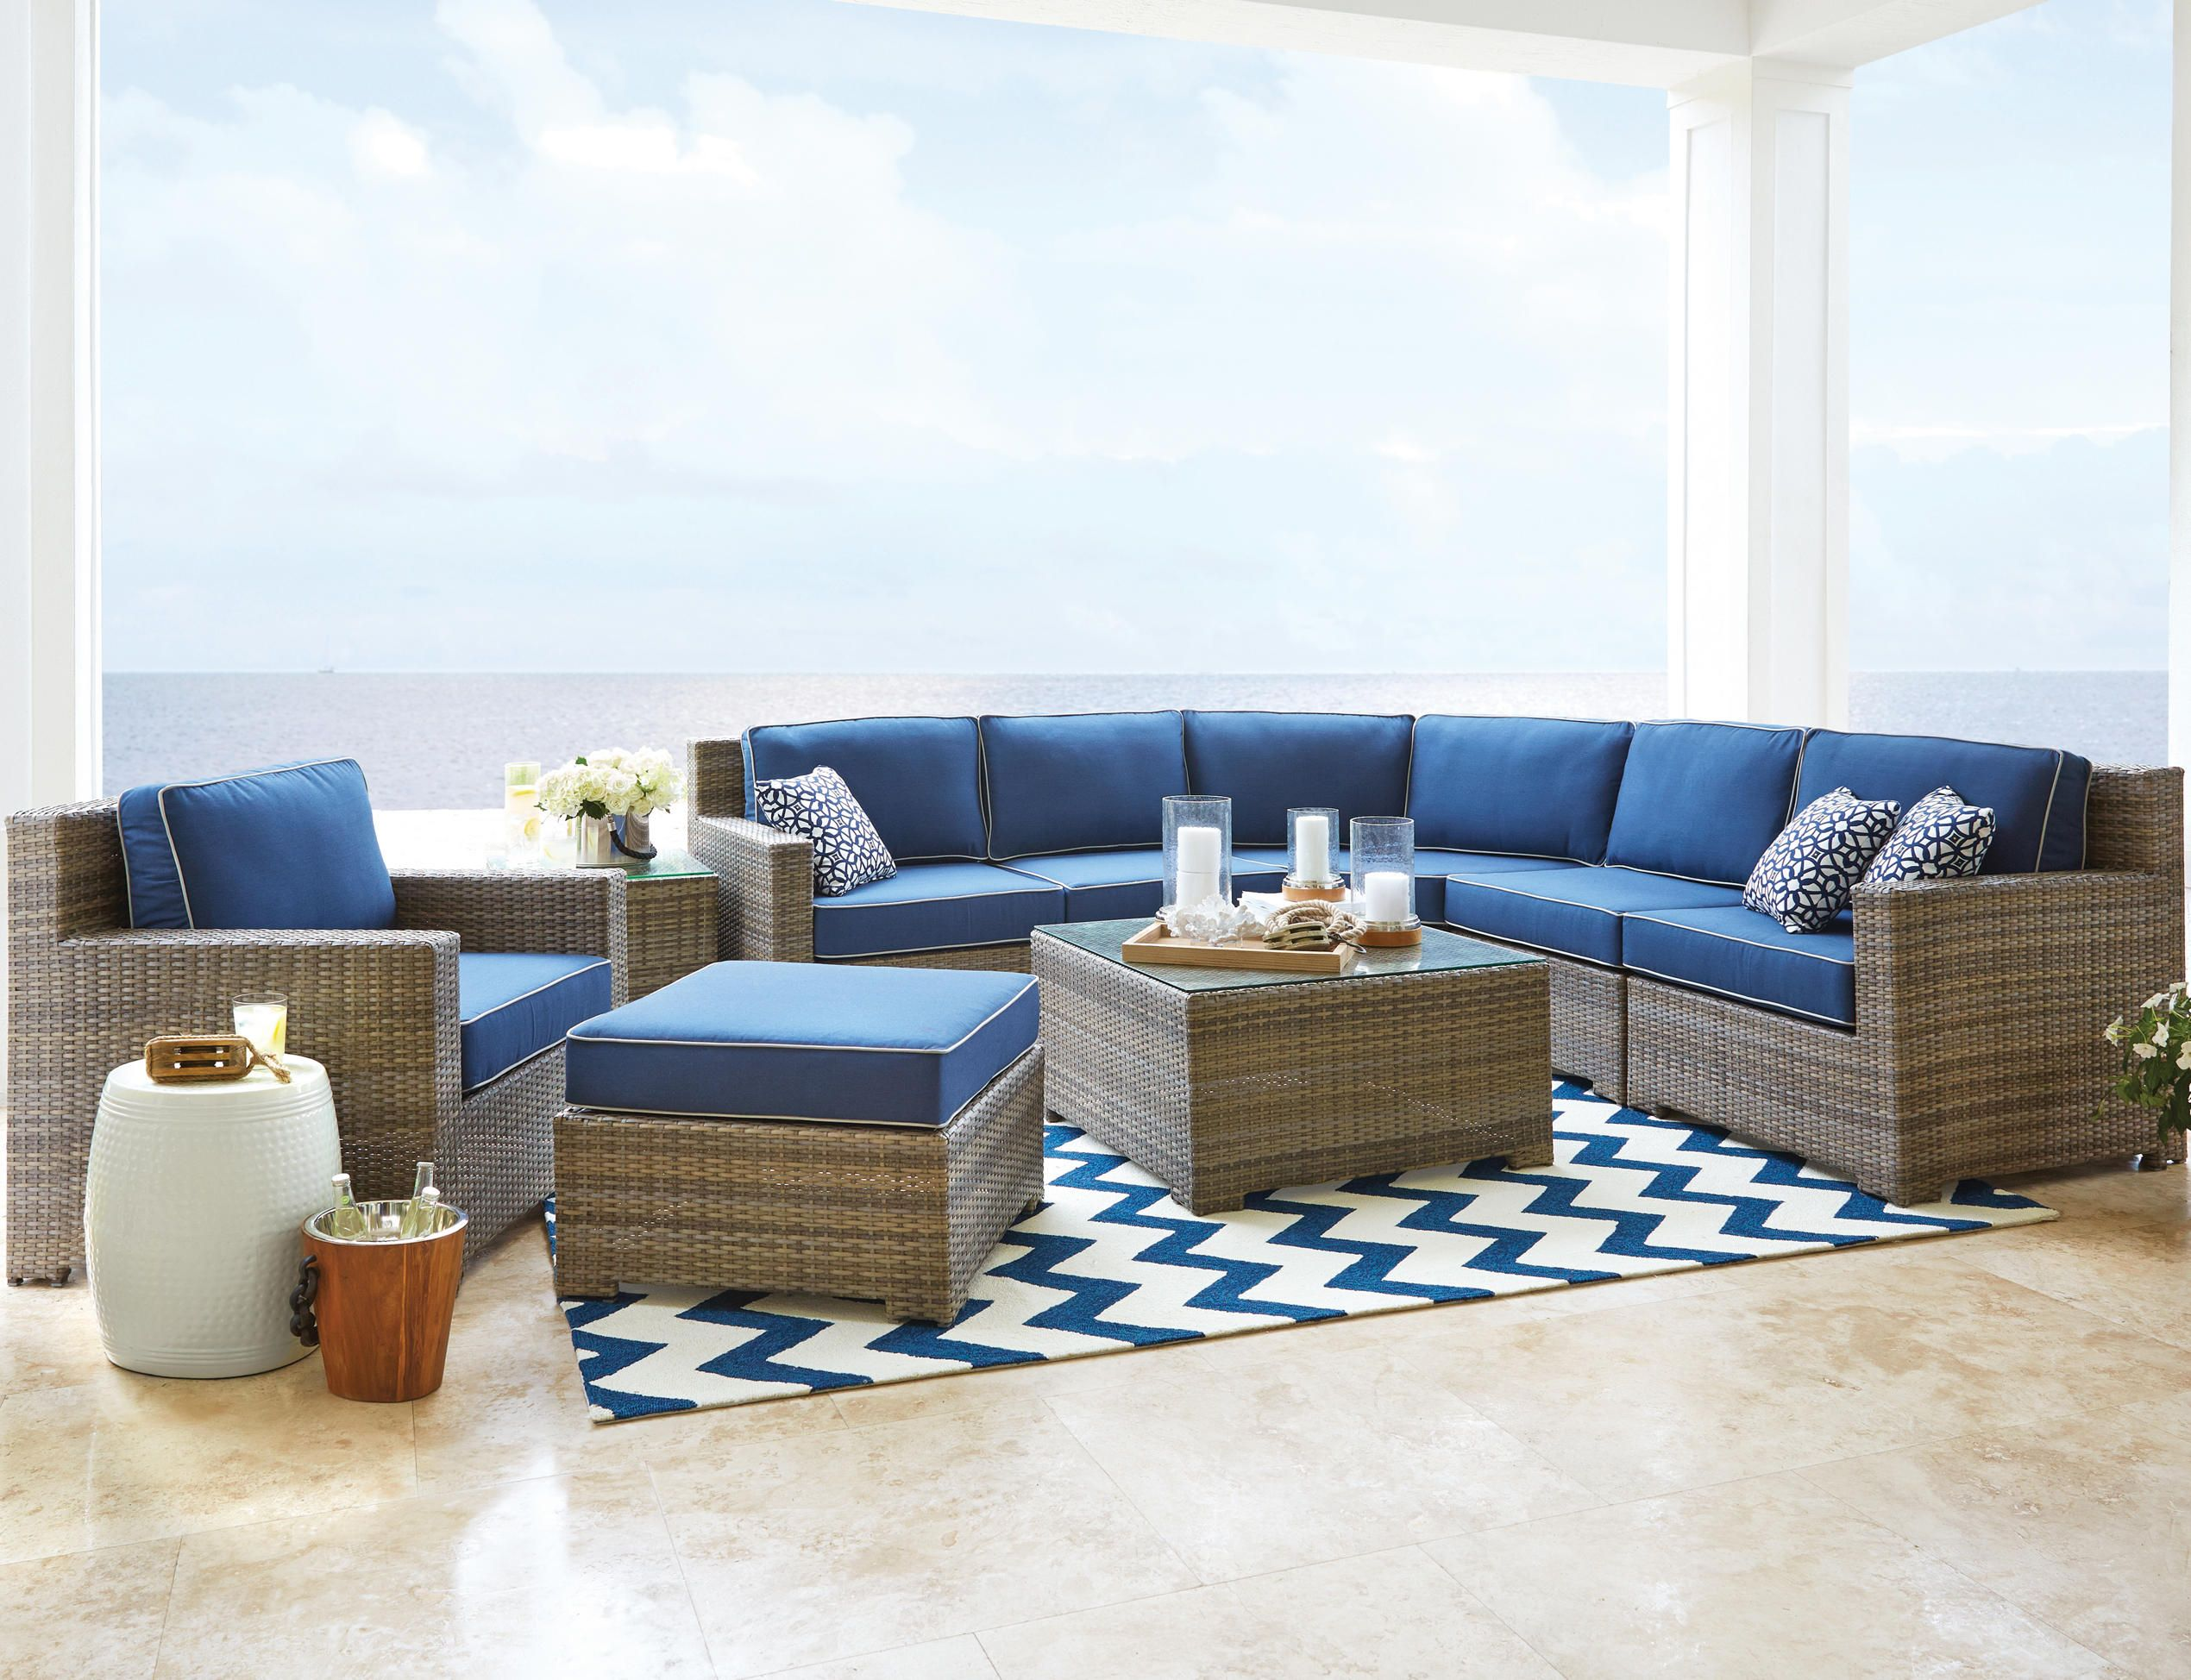 Perfect The Carmel Seating Collection Offers A Stylish And Comfortable Escape From  The Ordinary With All . Classic StyleOutdoor FurnitureOutdoor ...